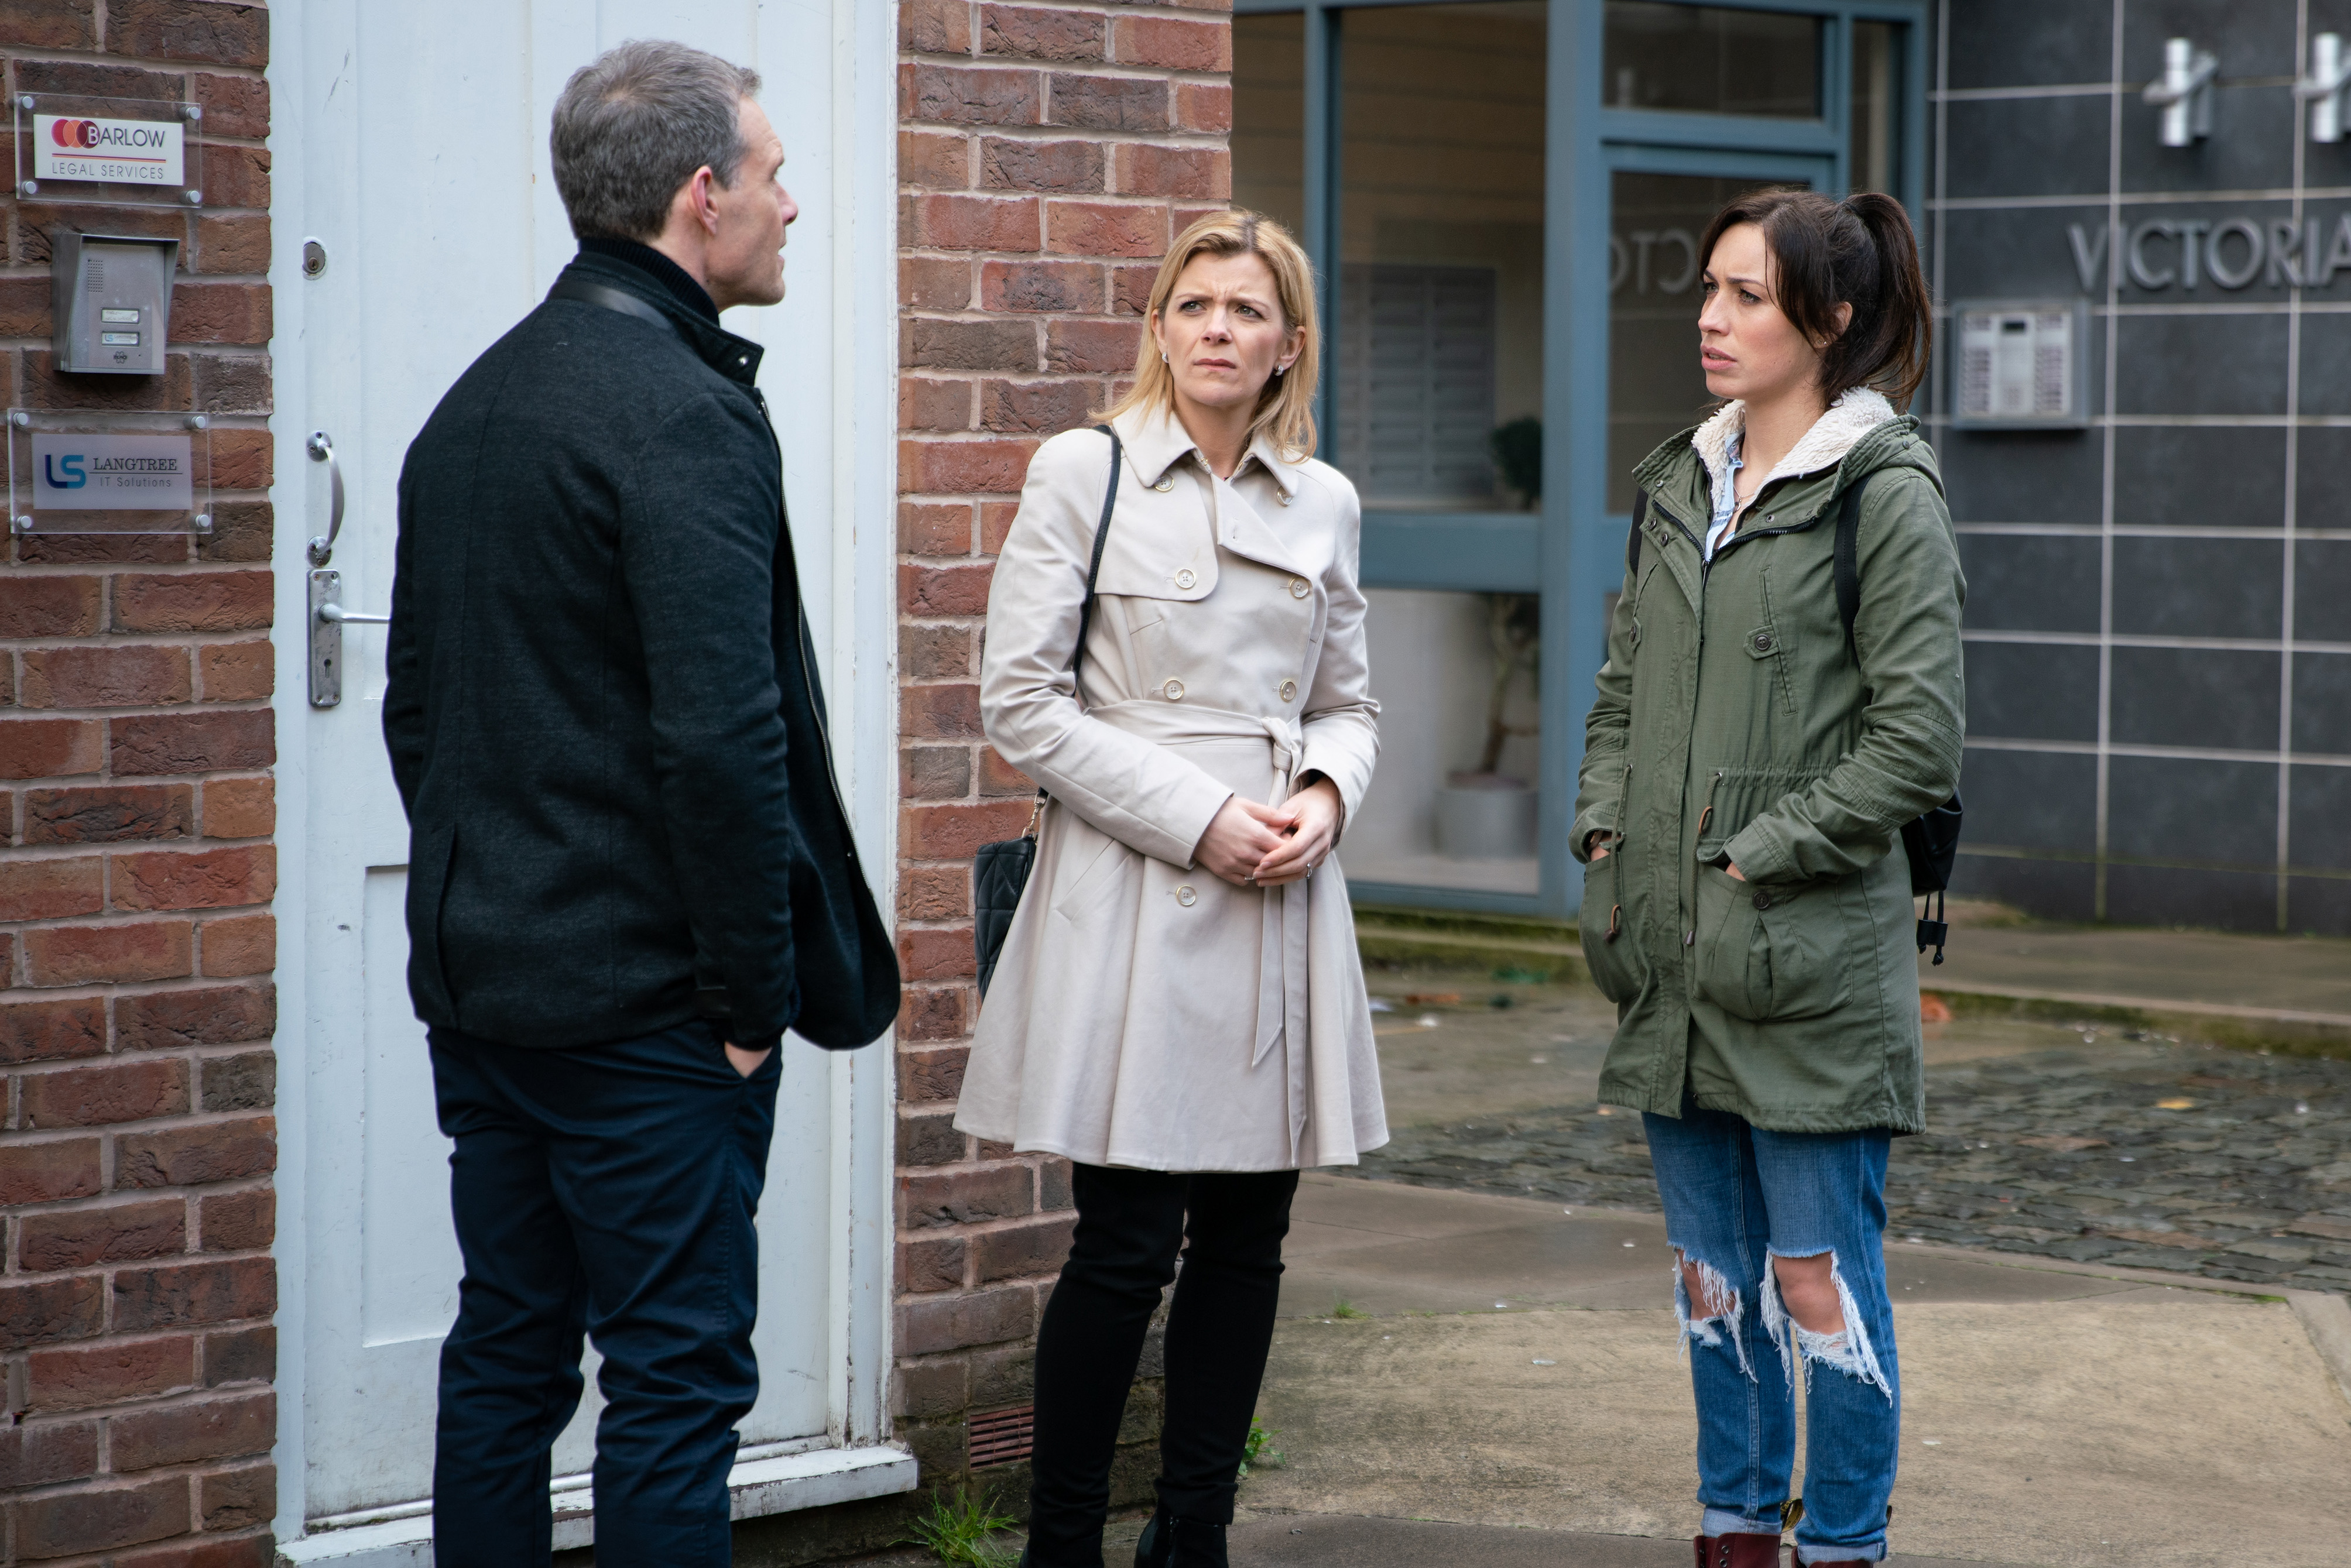 Does Leanne decide to dump Nick?